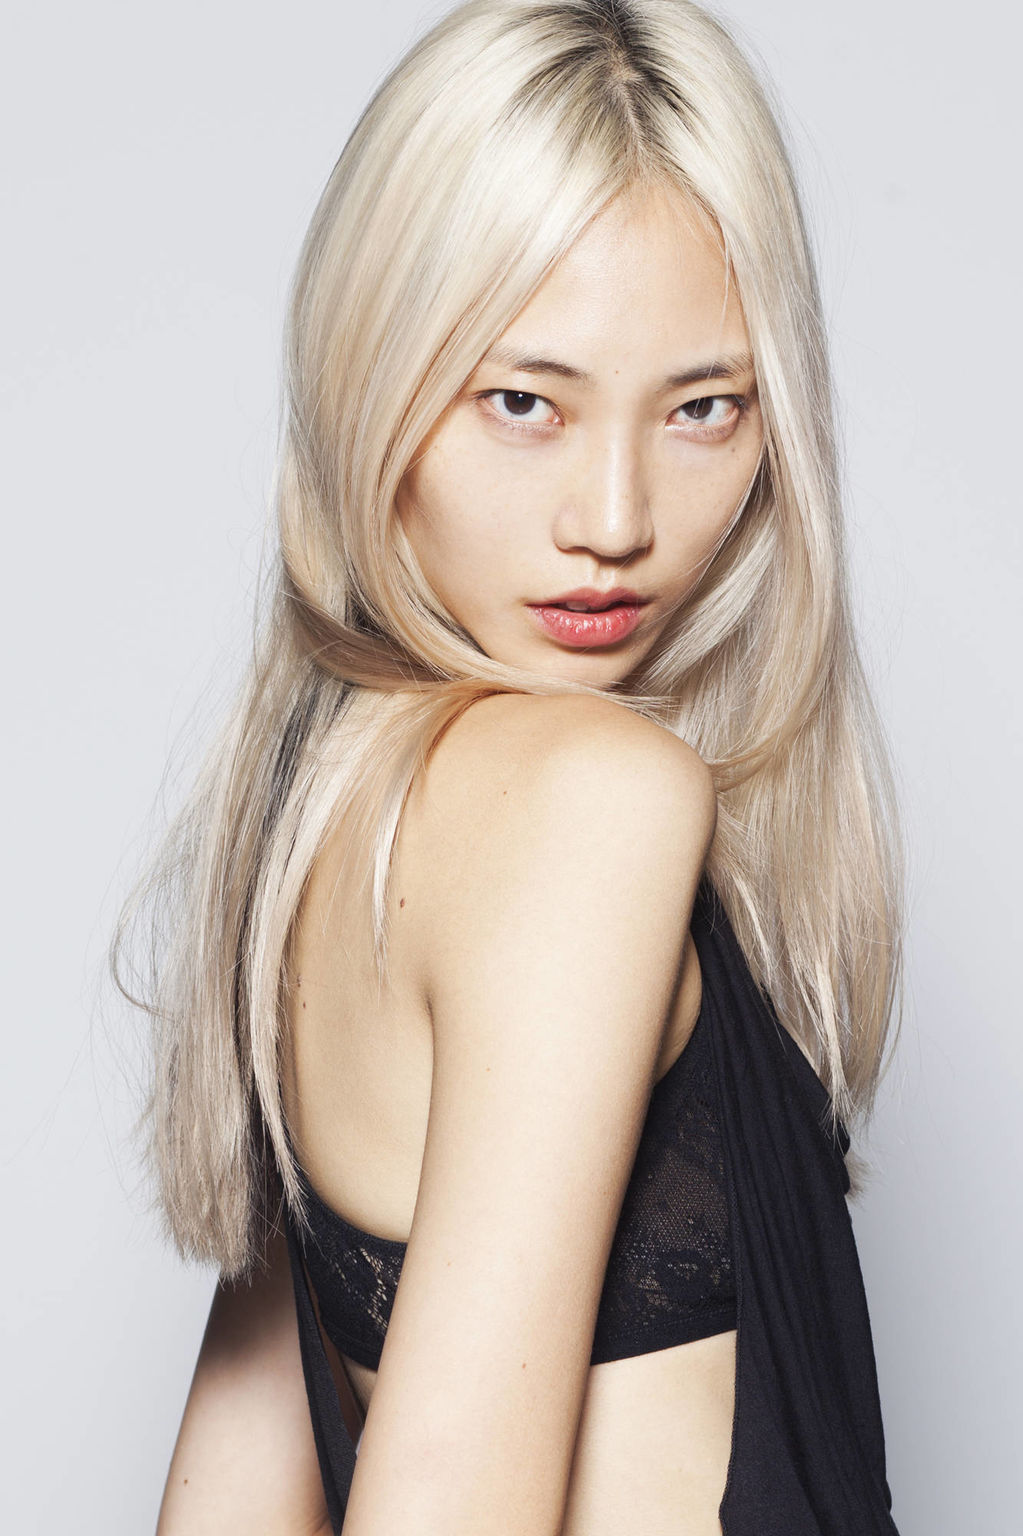 Fotos Soo Joo Park nude (47 photo), Ass, Bikini, Selfie, cleavage 2006